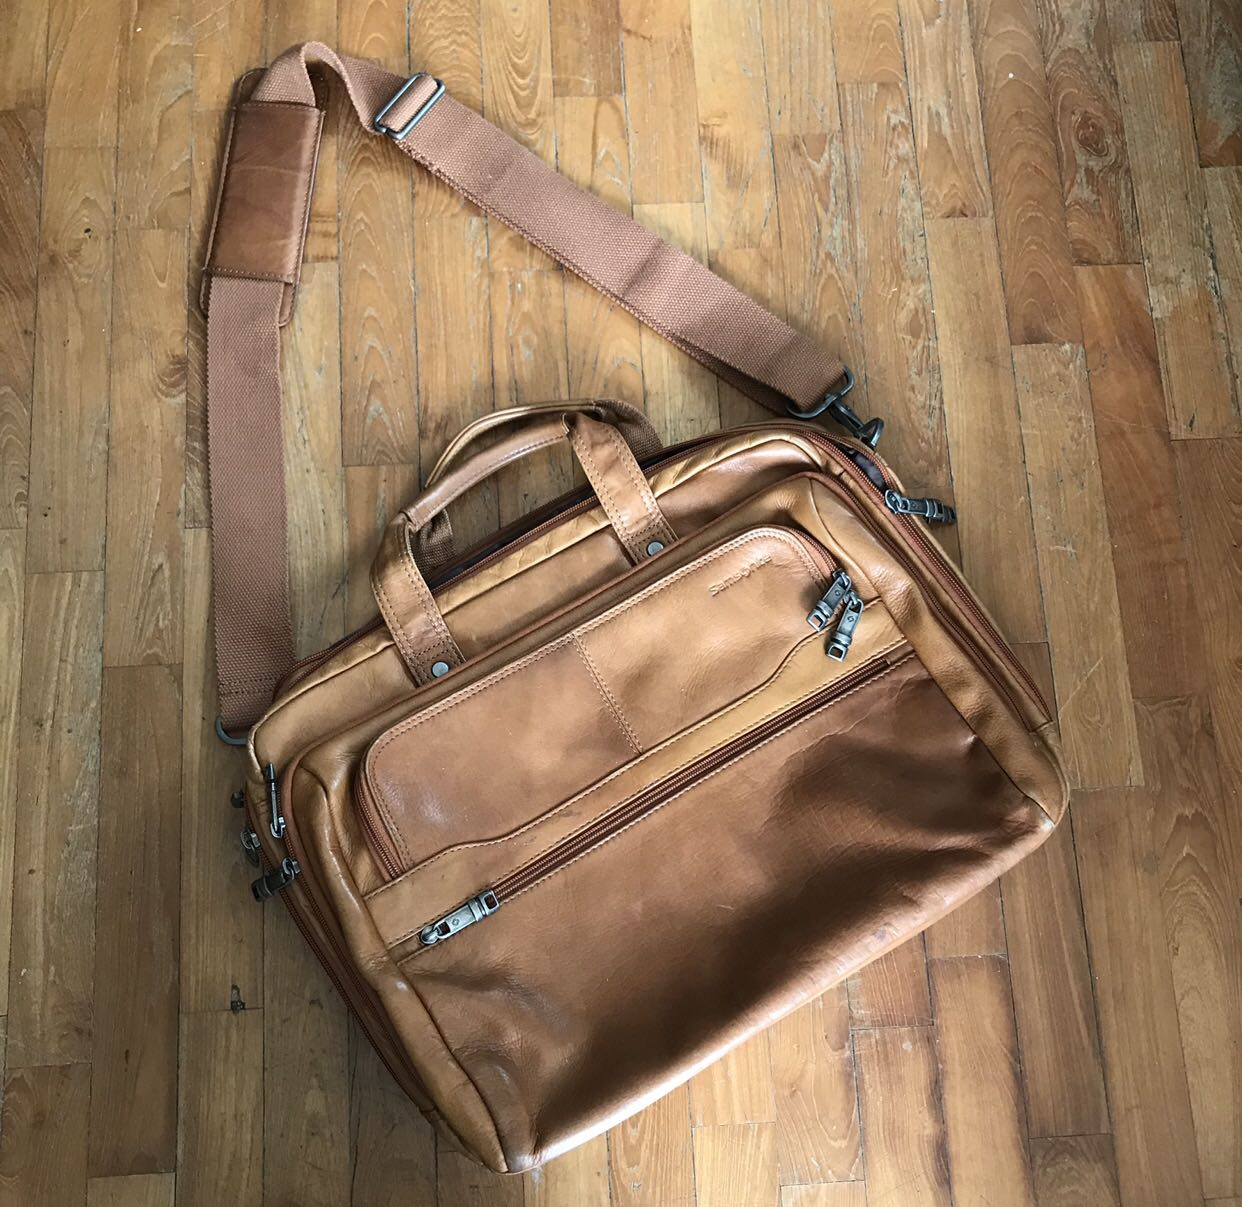 bdeaf33d8f Home · Men s Fashion · Bags   Wallets · Others. photo photo photo photo